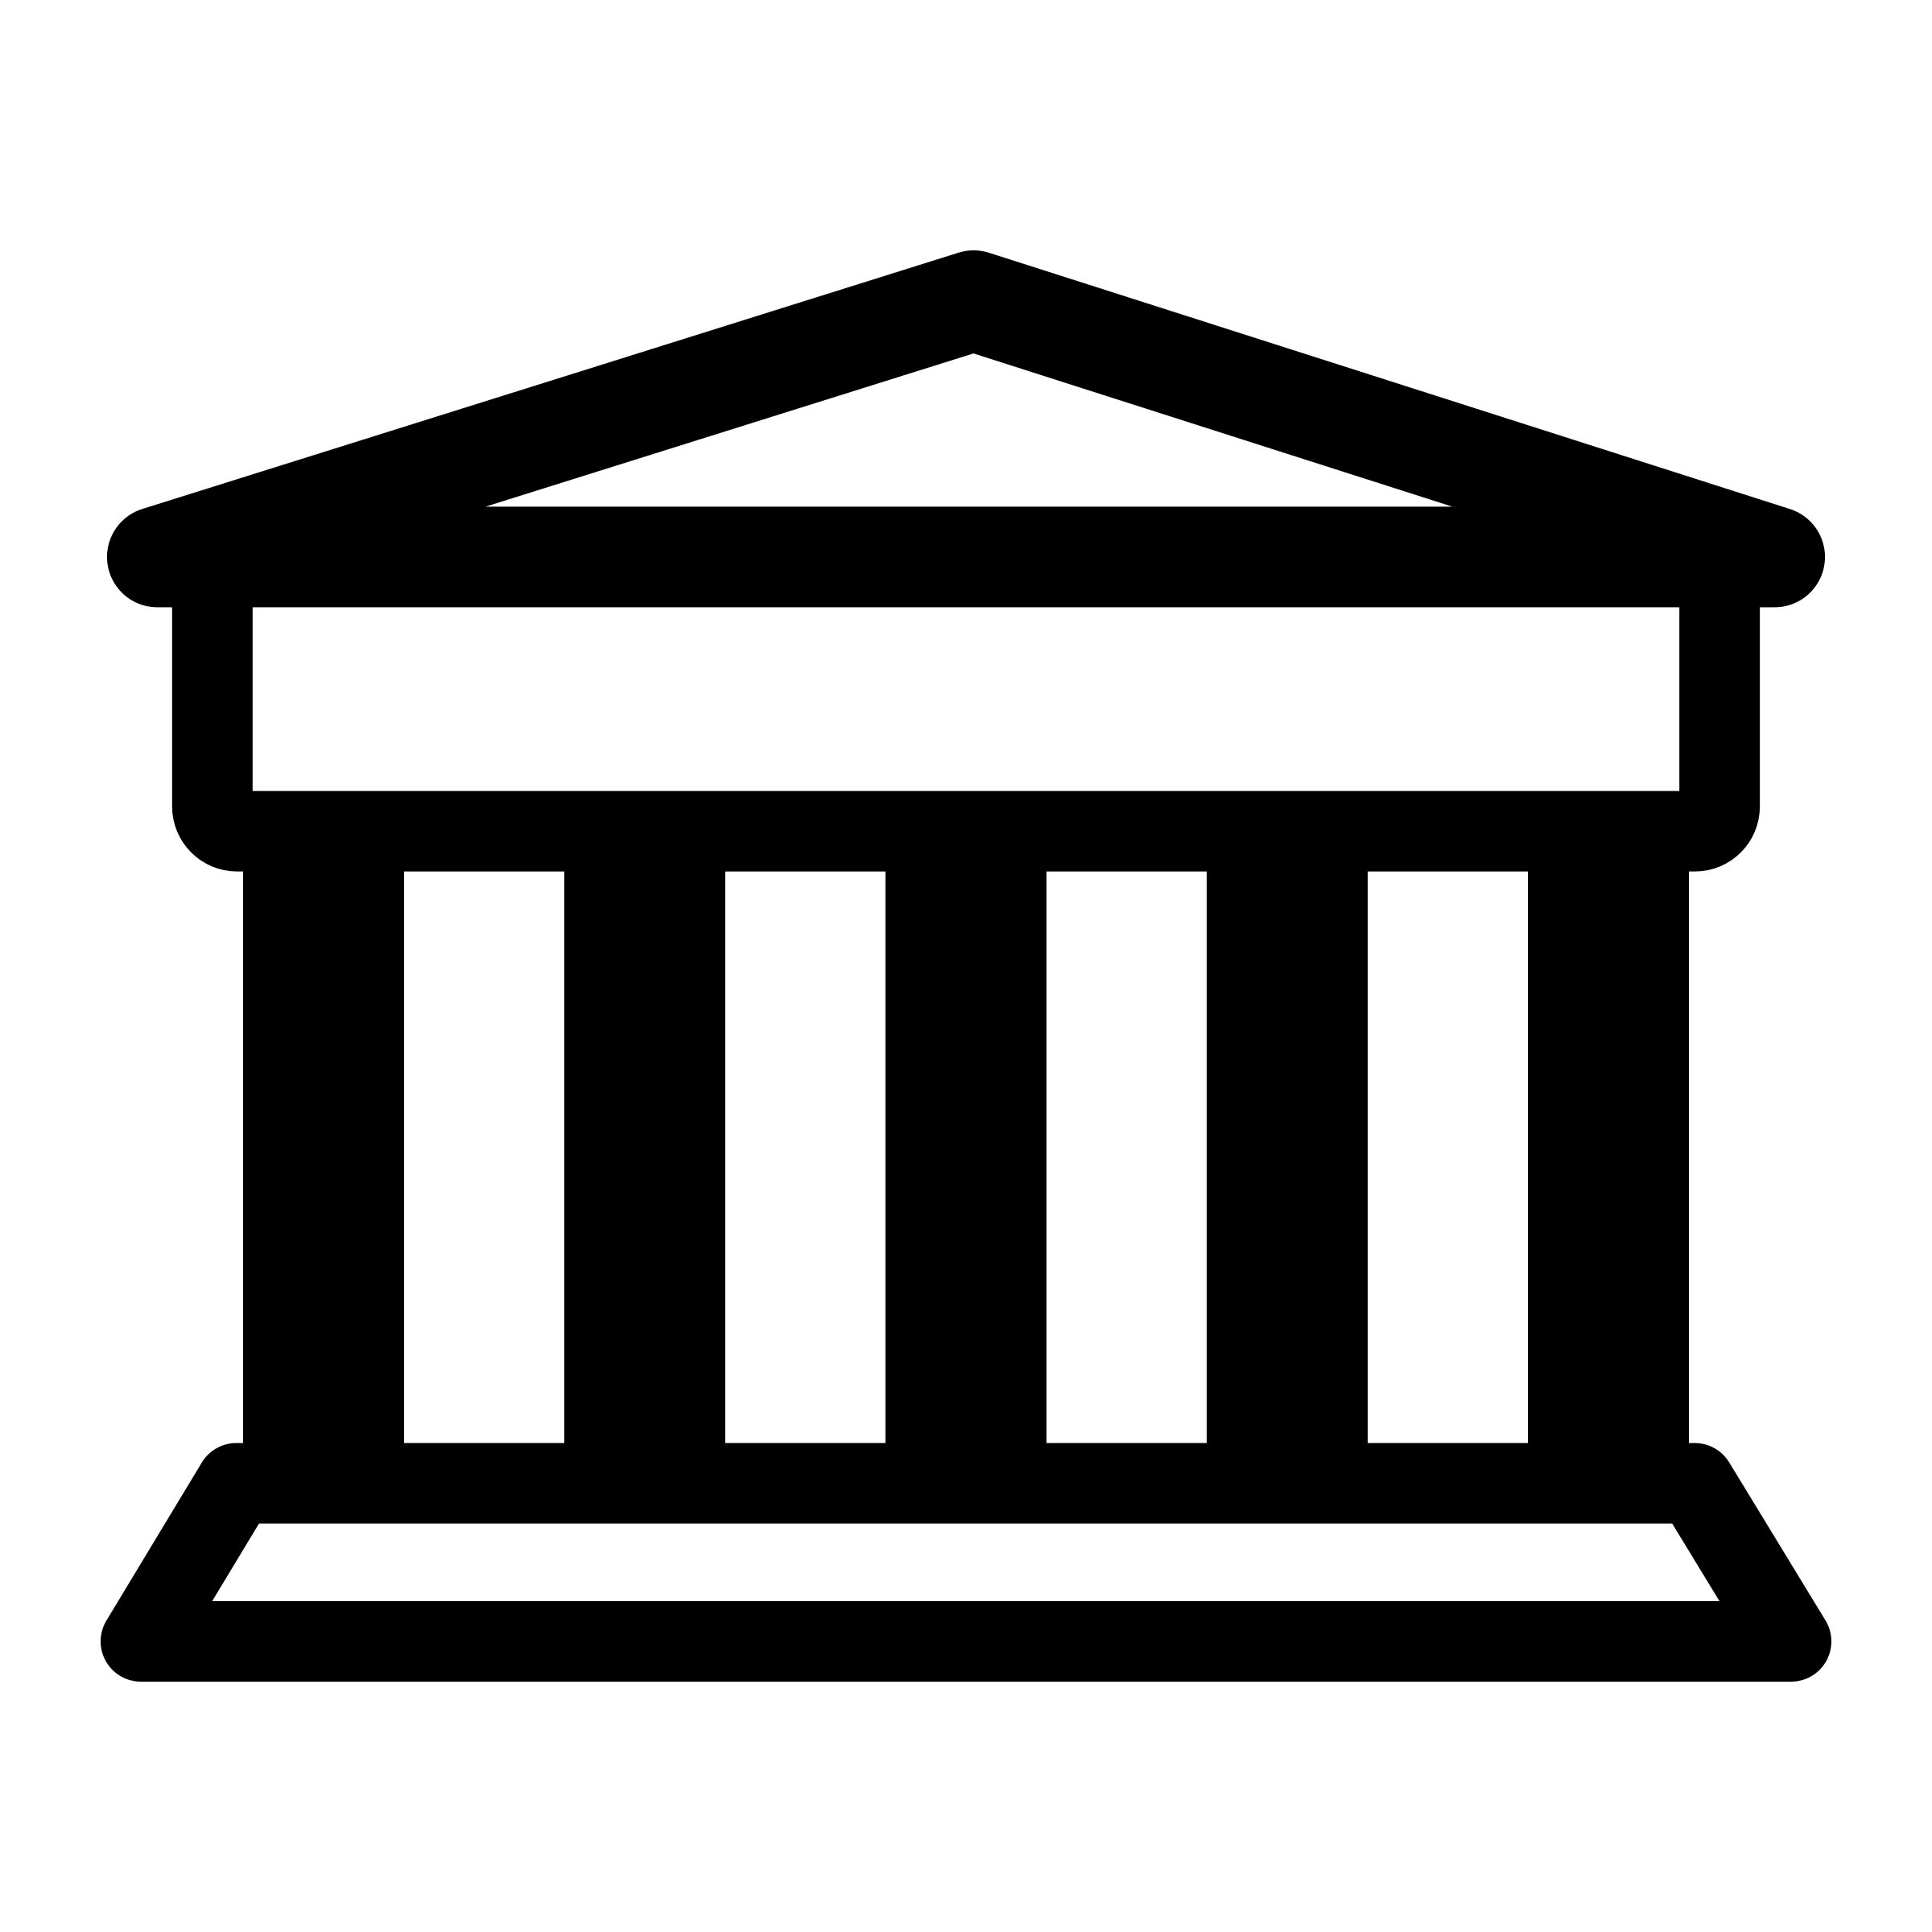 Banker clipart. Bank black and white